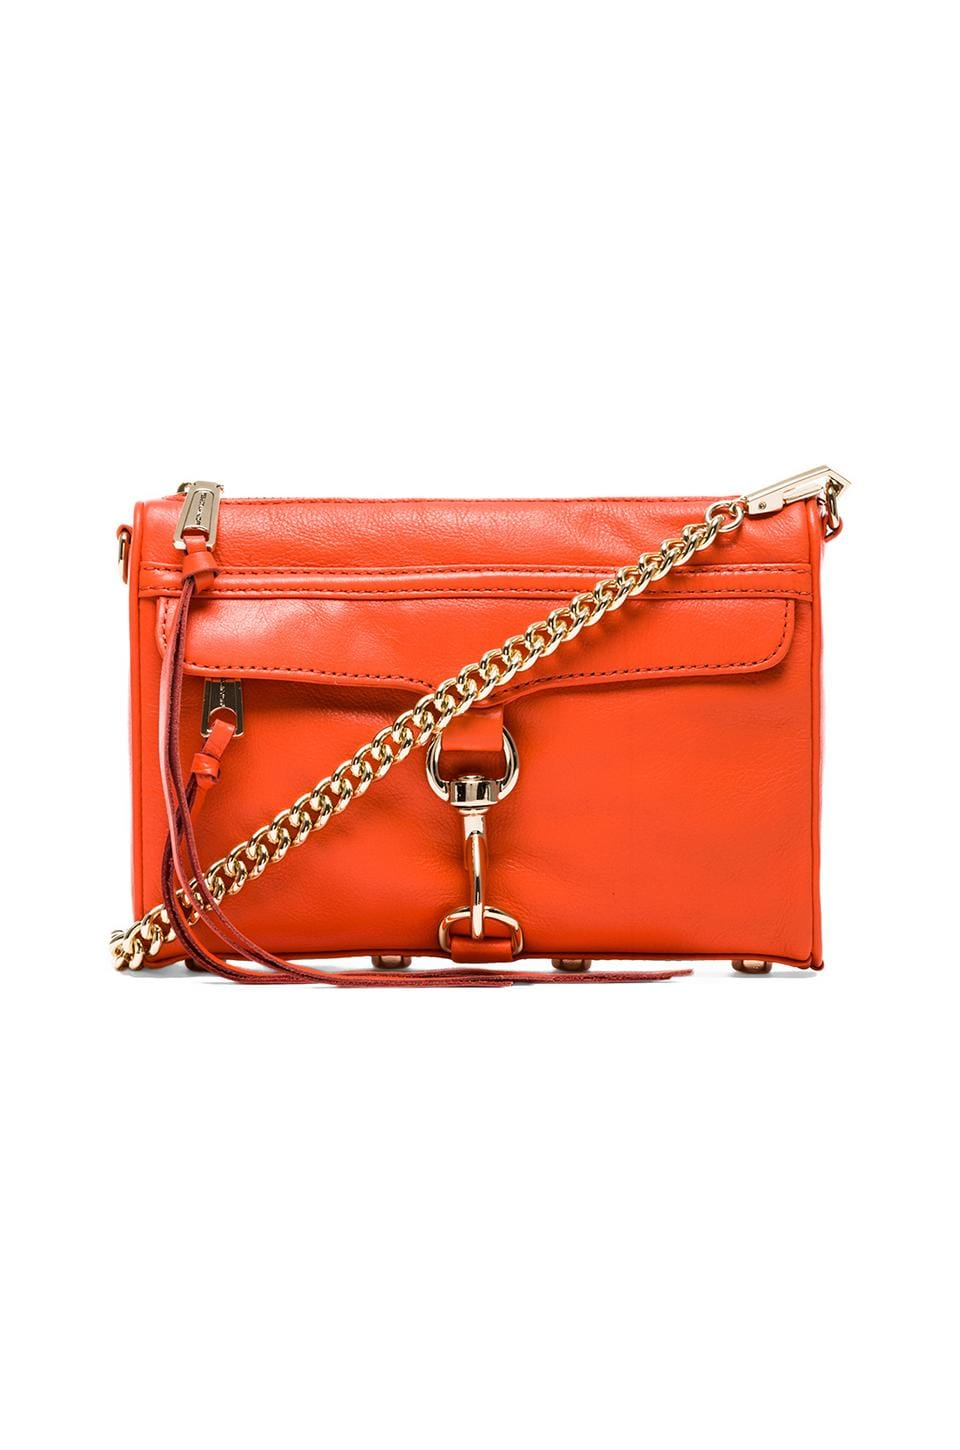 Rebecca Minkoff Mini MAC in Orangina